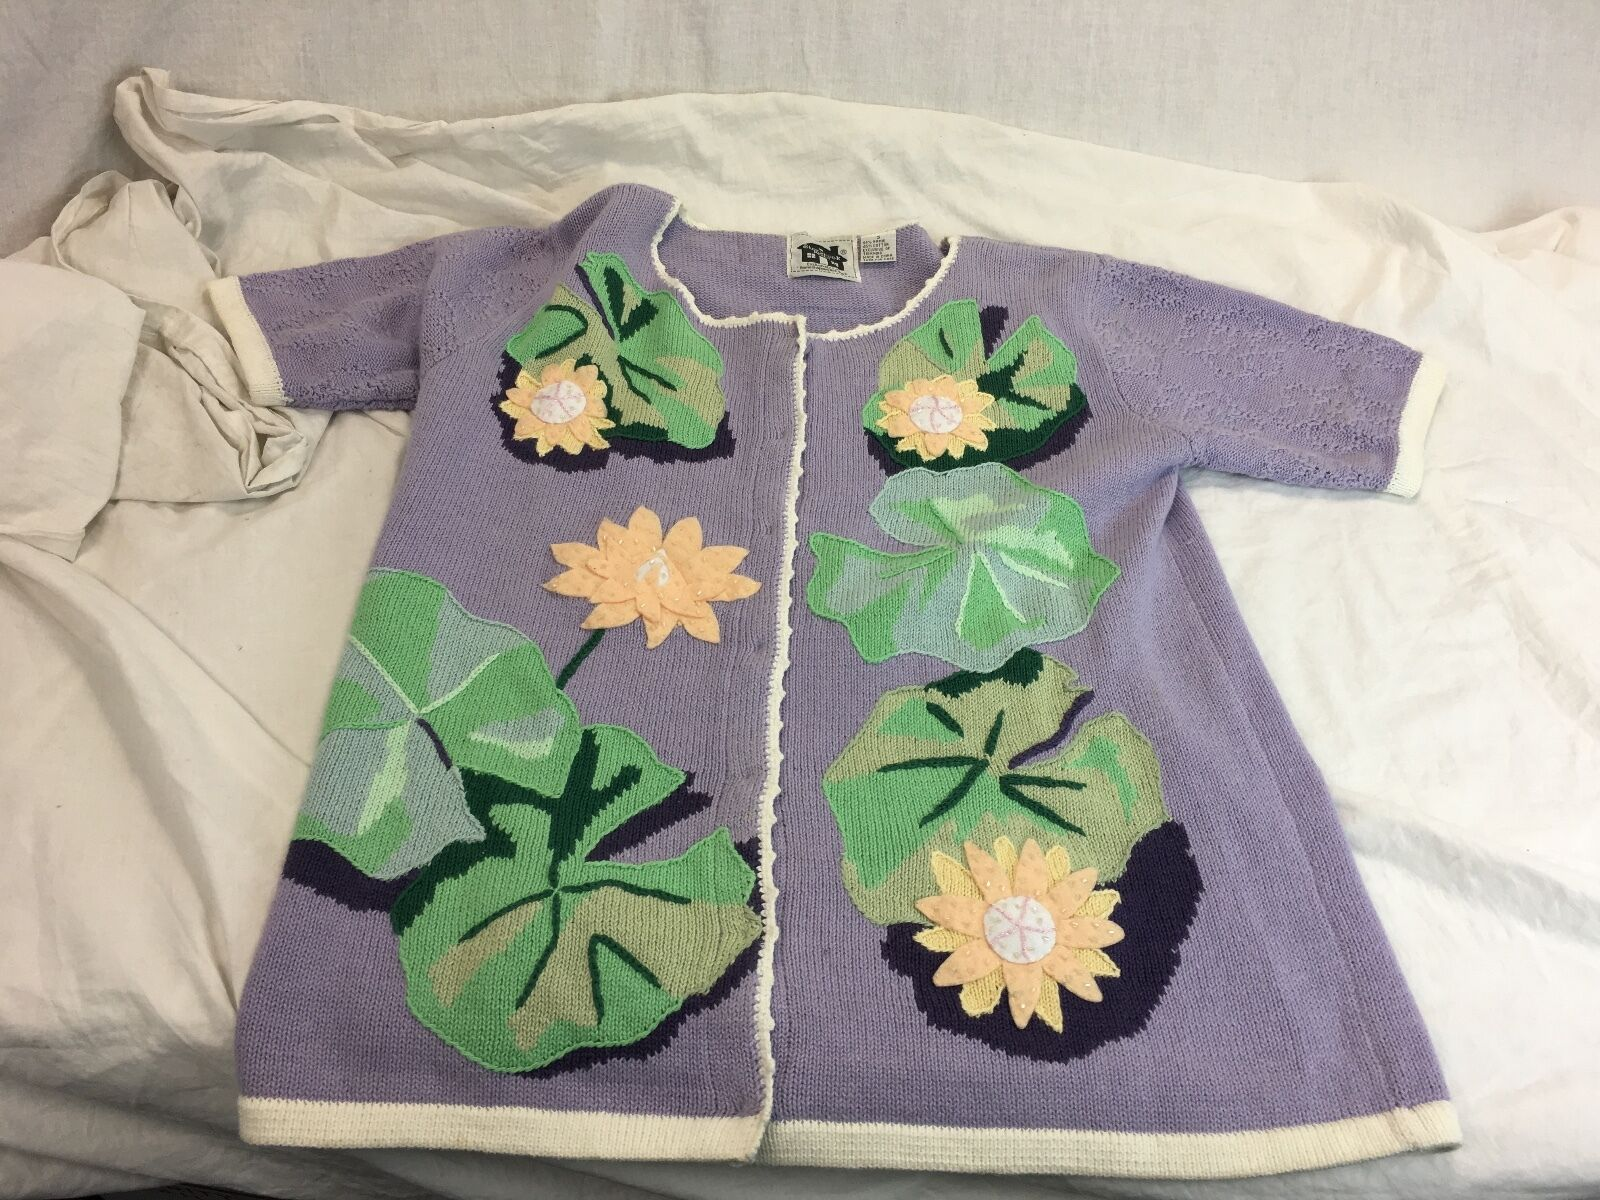 Storybook Knits Knits Knits  Flowers Lilies Short Sleeve Cardigan Sweater Small NEAR MINT 7a5ec2